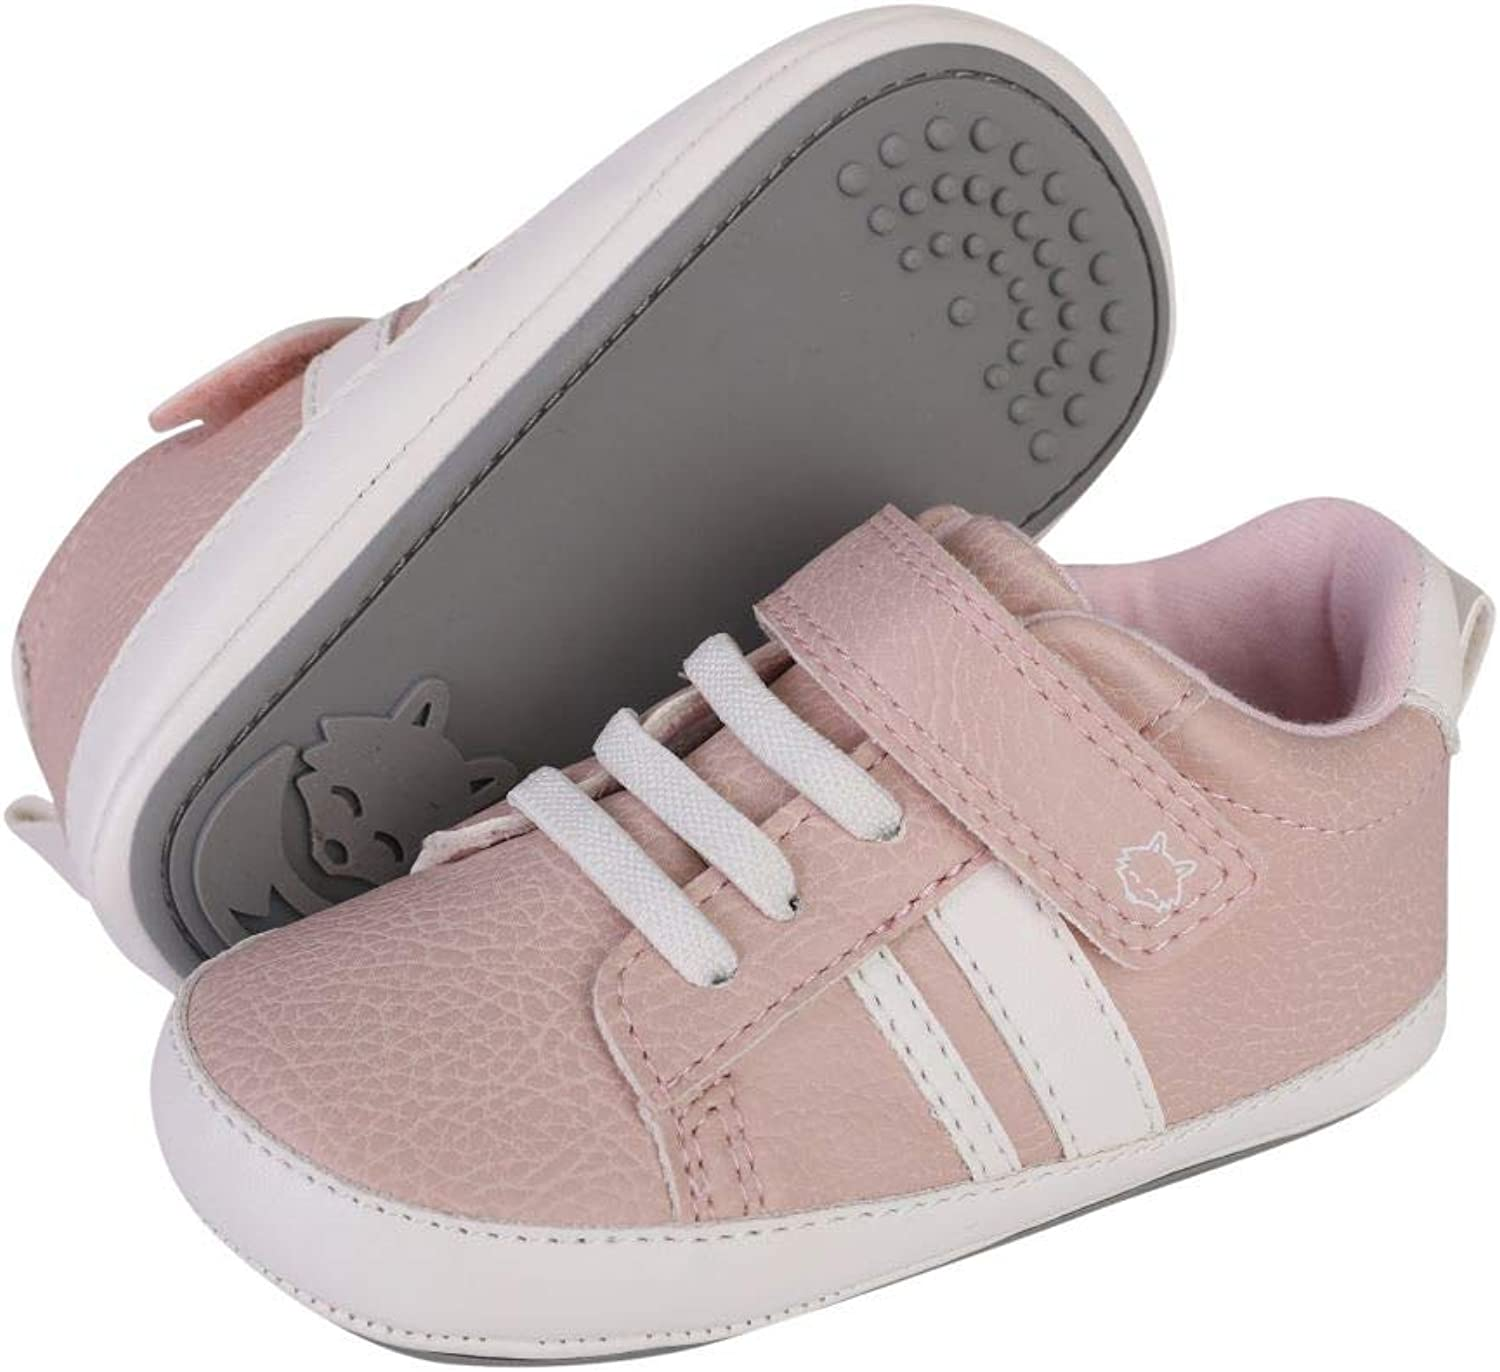 HIPFOX Baby Anti-Slip Rubber Sole Shoes | Premium Soft Sneakers for Infants, Crawlers, & First Walkers Ages 6-24 Months